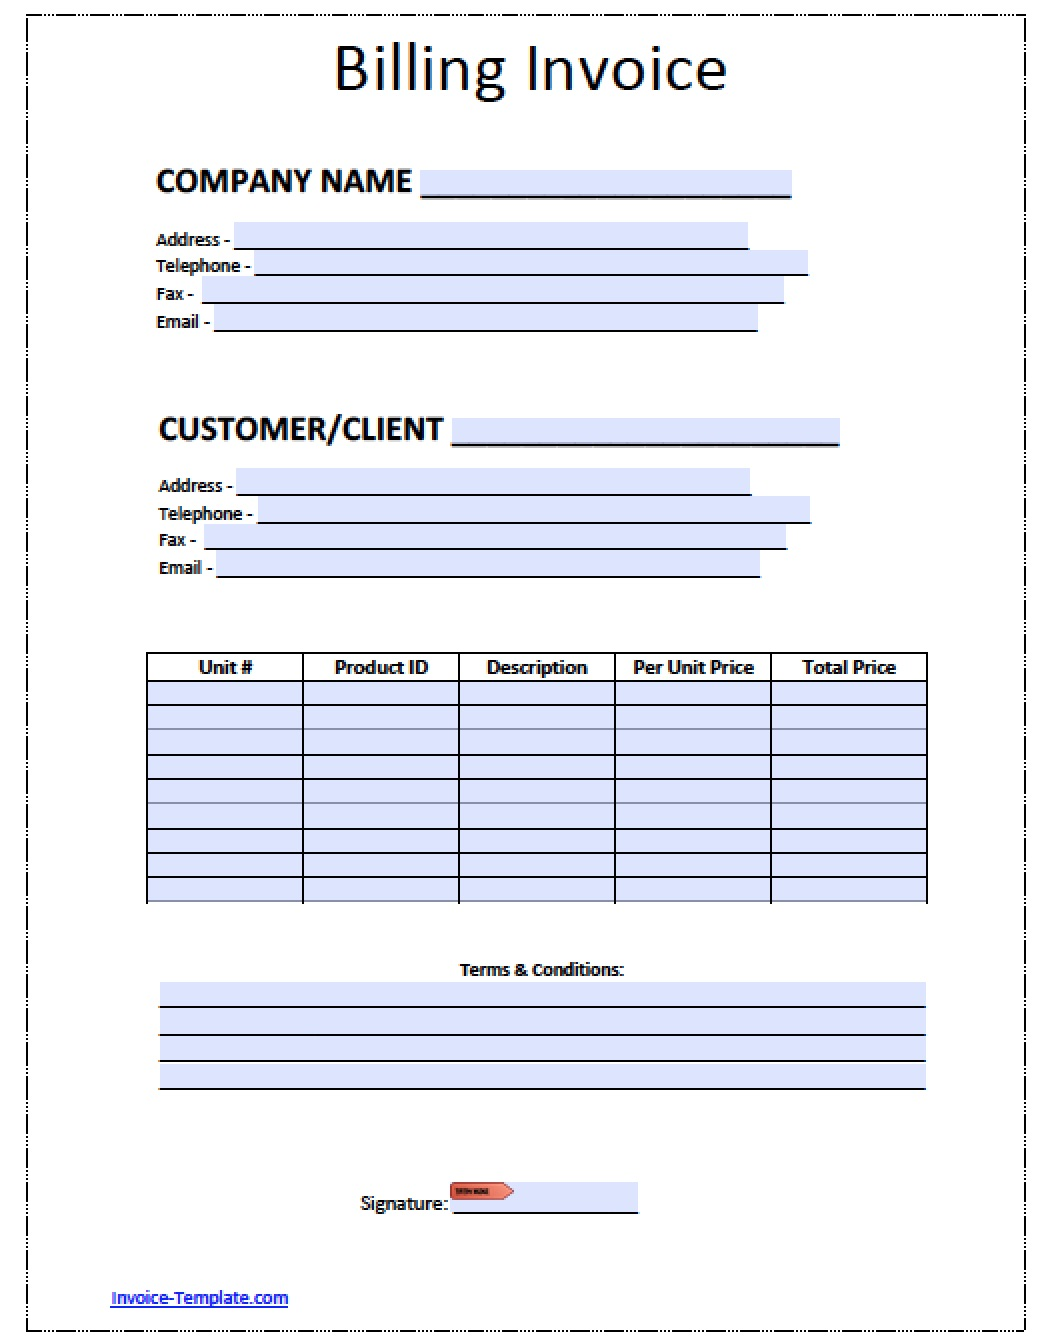 Free Billing Invoice Template Excel PDF Word Doc - Download free invoice template for word